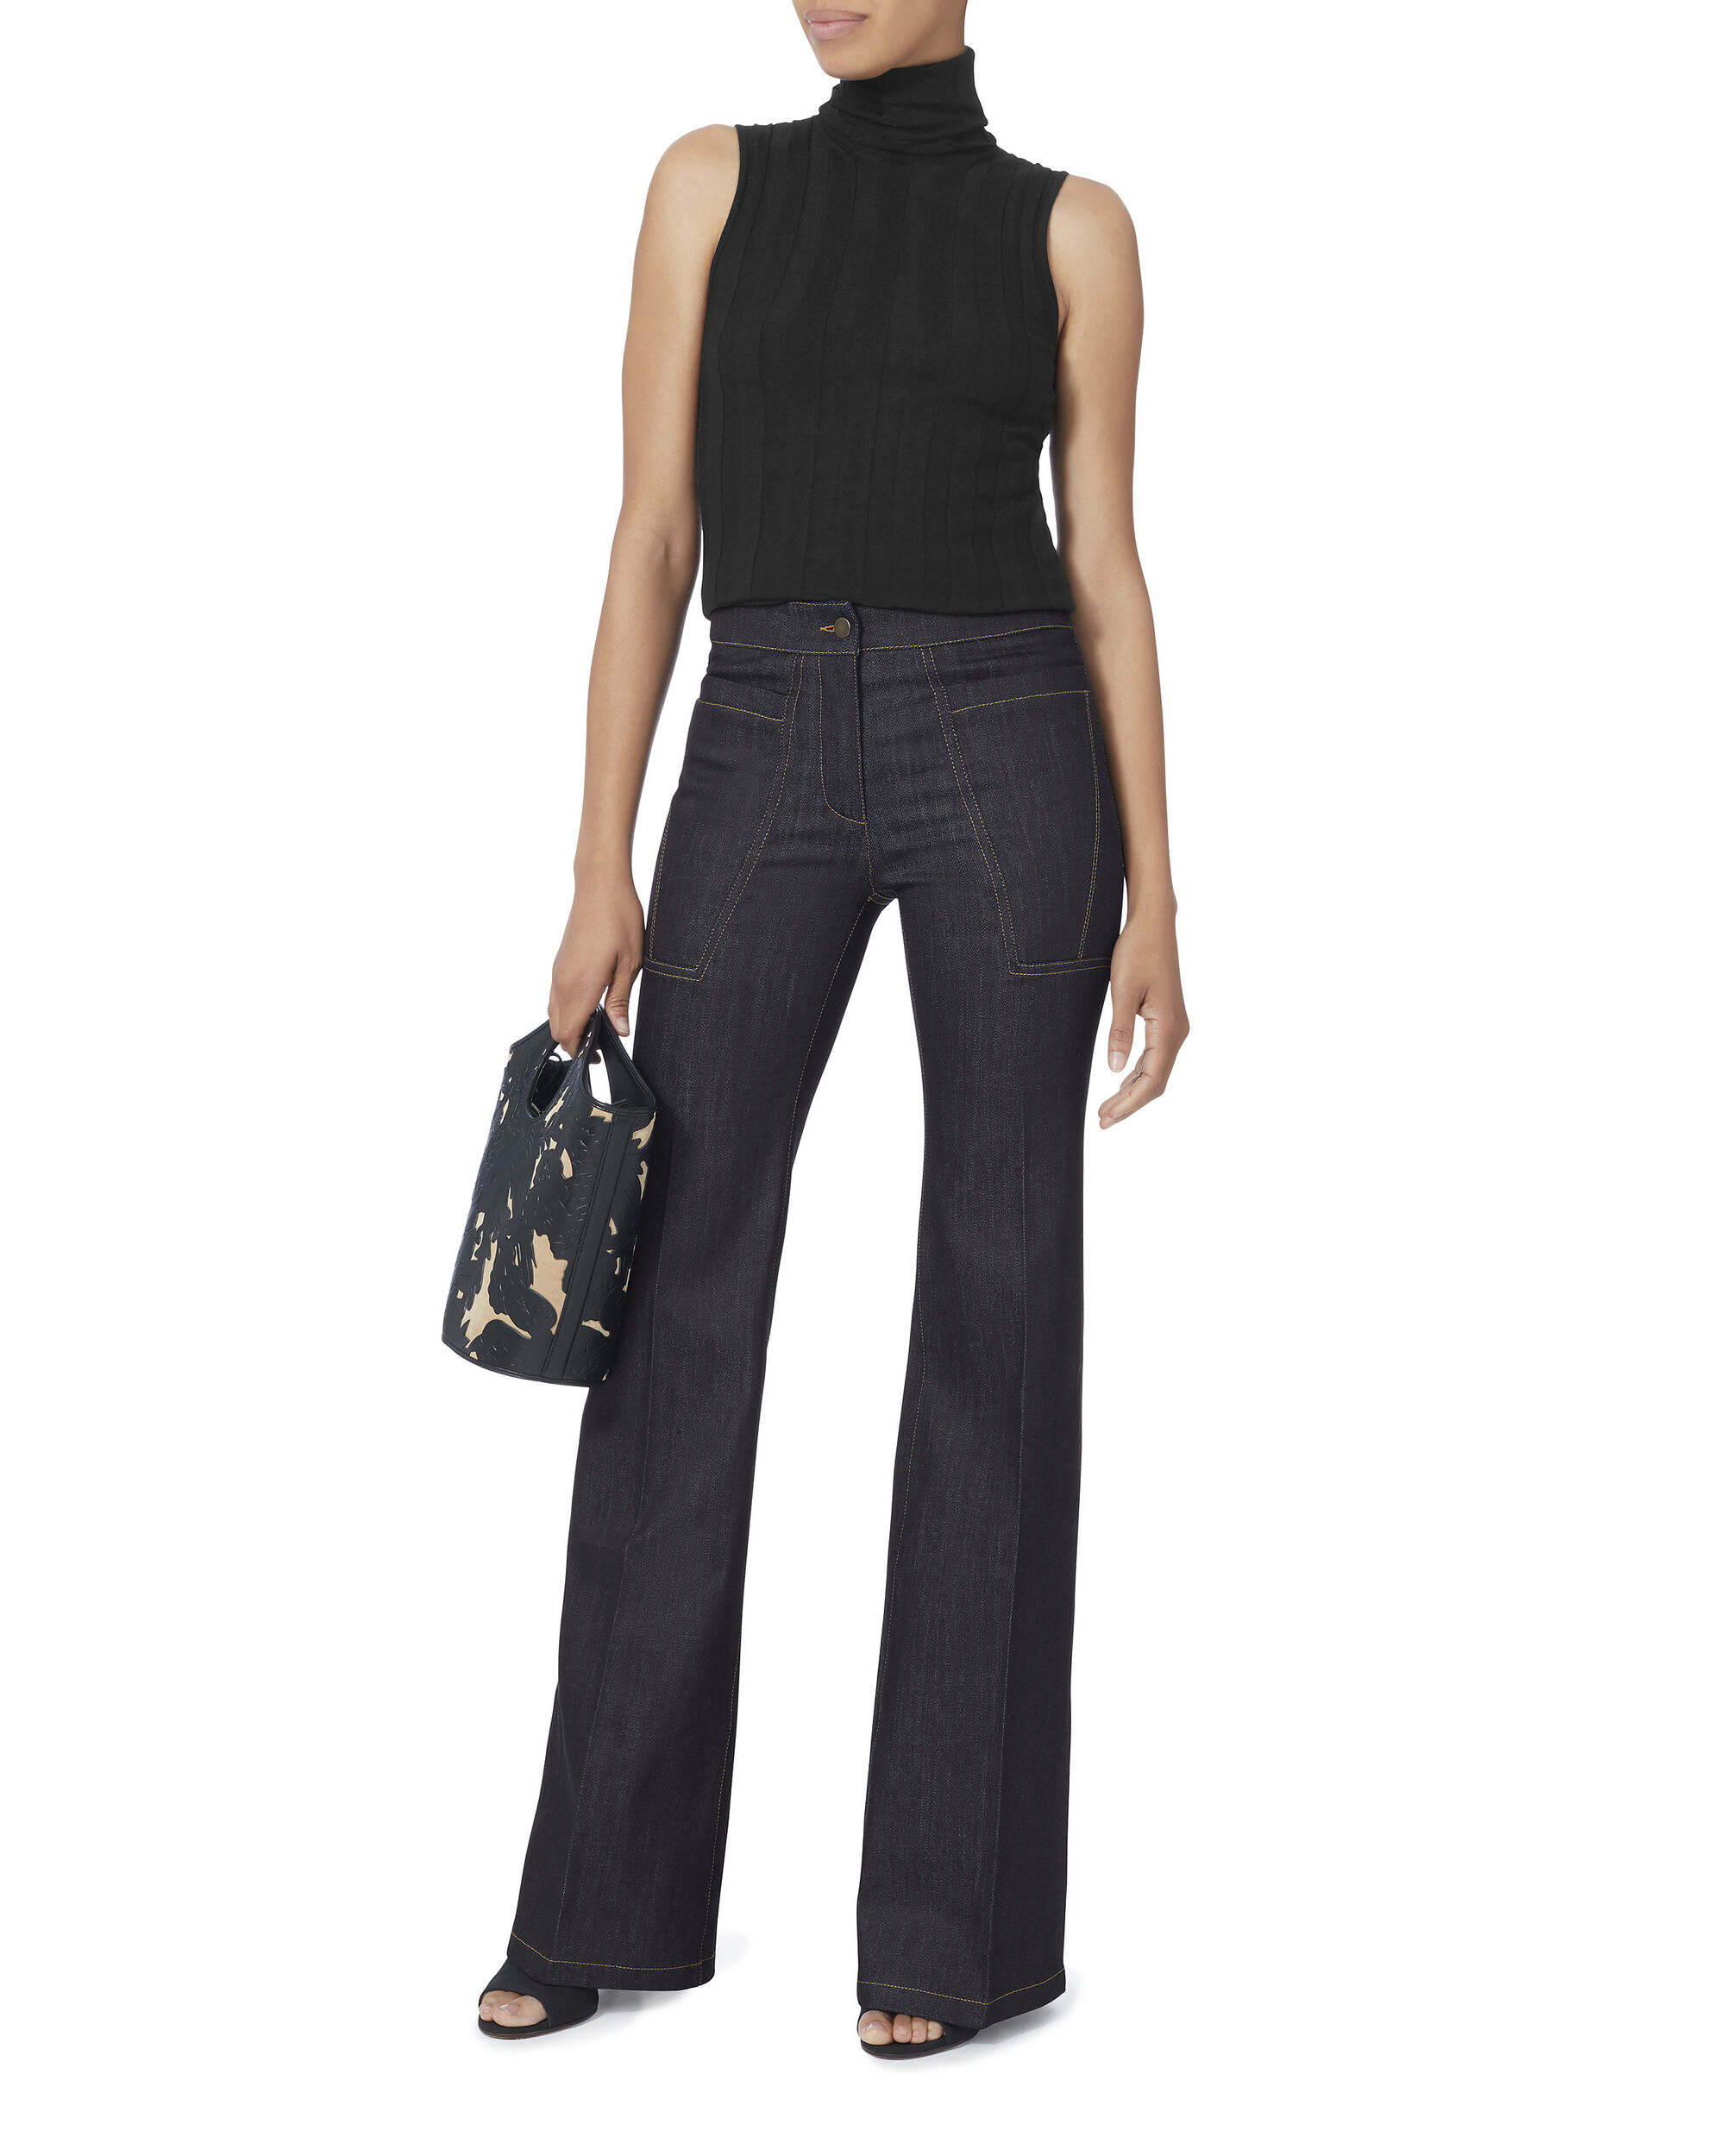 Charlotte Core High-Waisted Flare Jeans, DENIM, hi-res